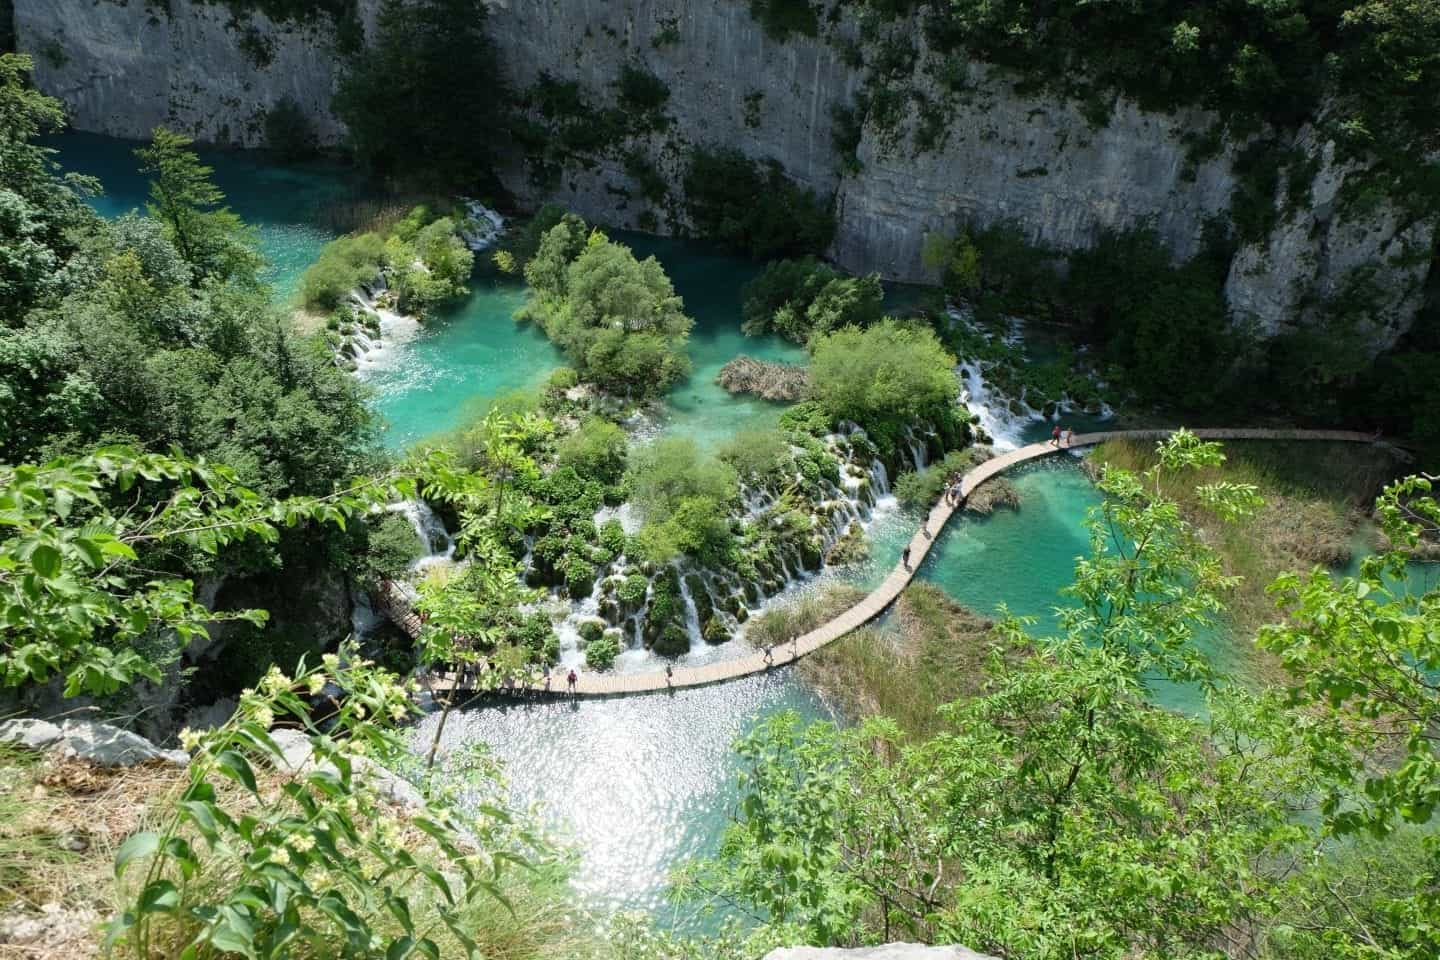 Balkans Travel: Places to Visit in the Balkans +Transport, Safety & More!